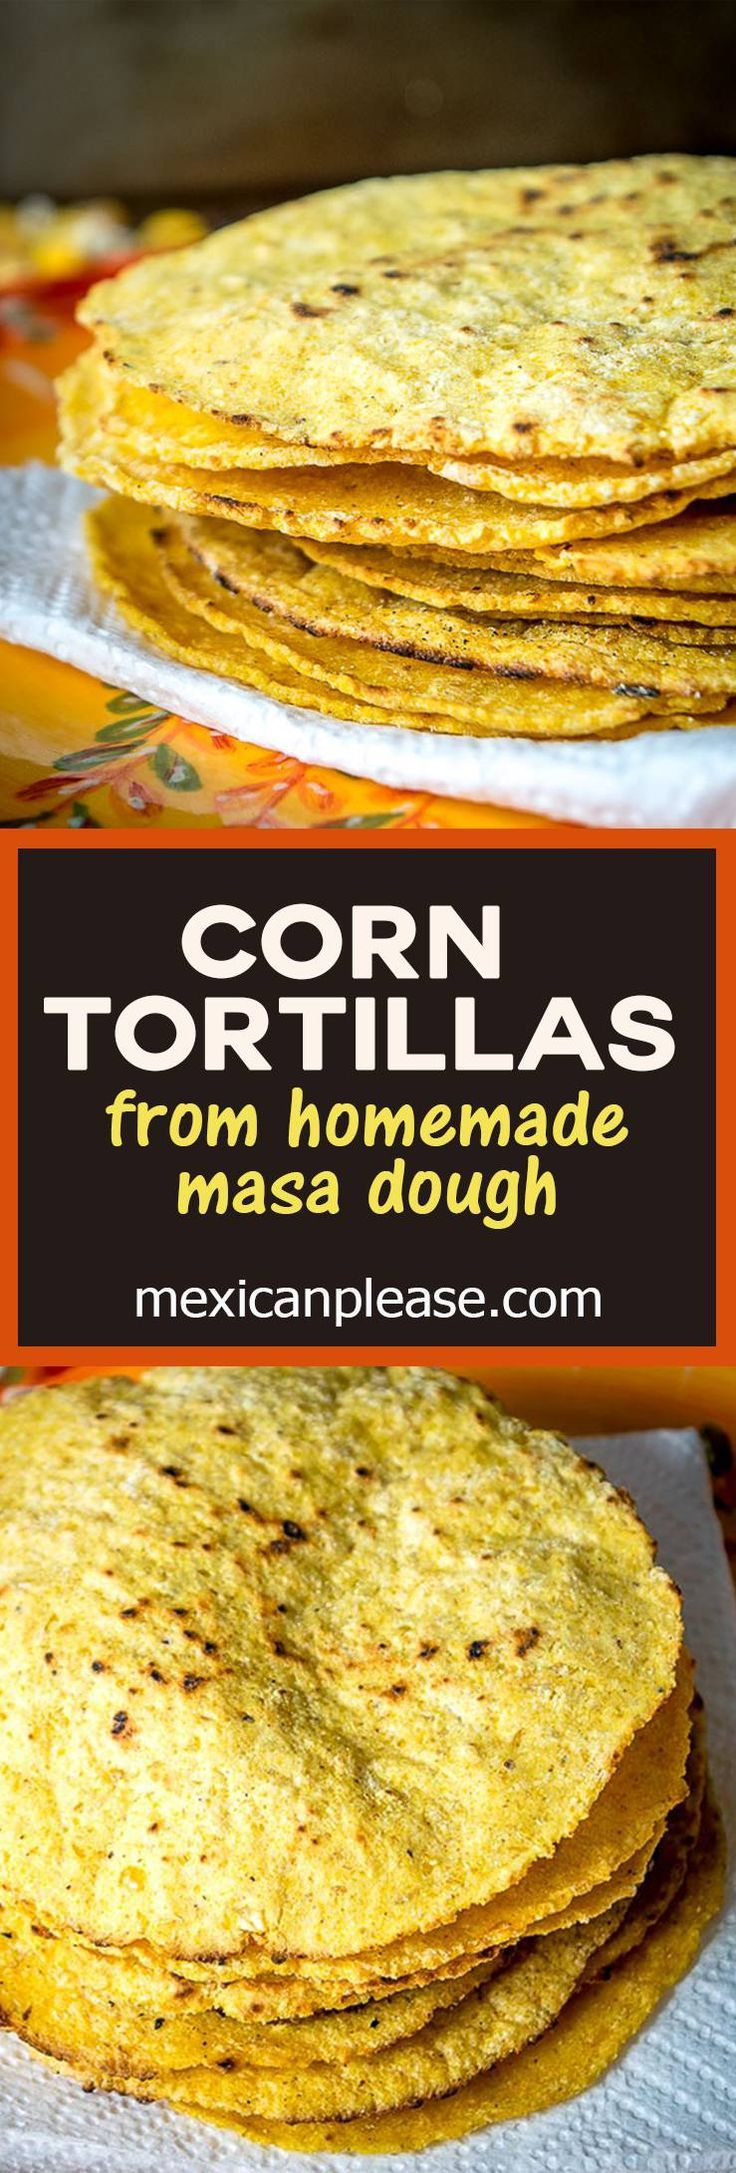 We're using fresh masa dough to make a delicious batch of homemade corn tortillas!  We also added some masa harina to the dough to make it easier to work with.  mexicanplease.com